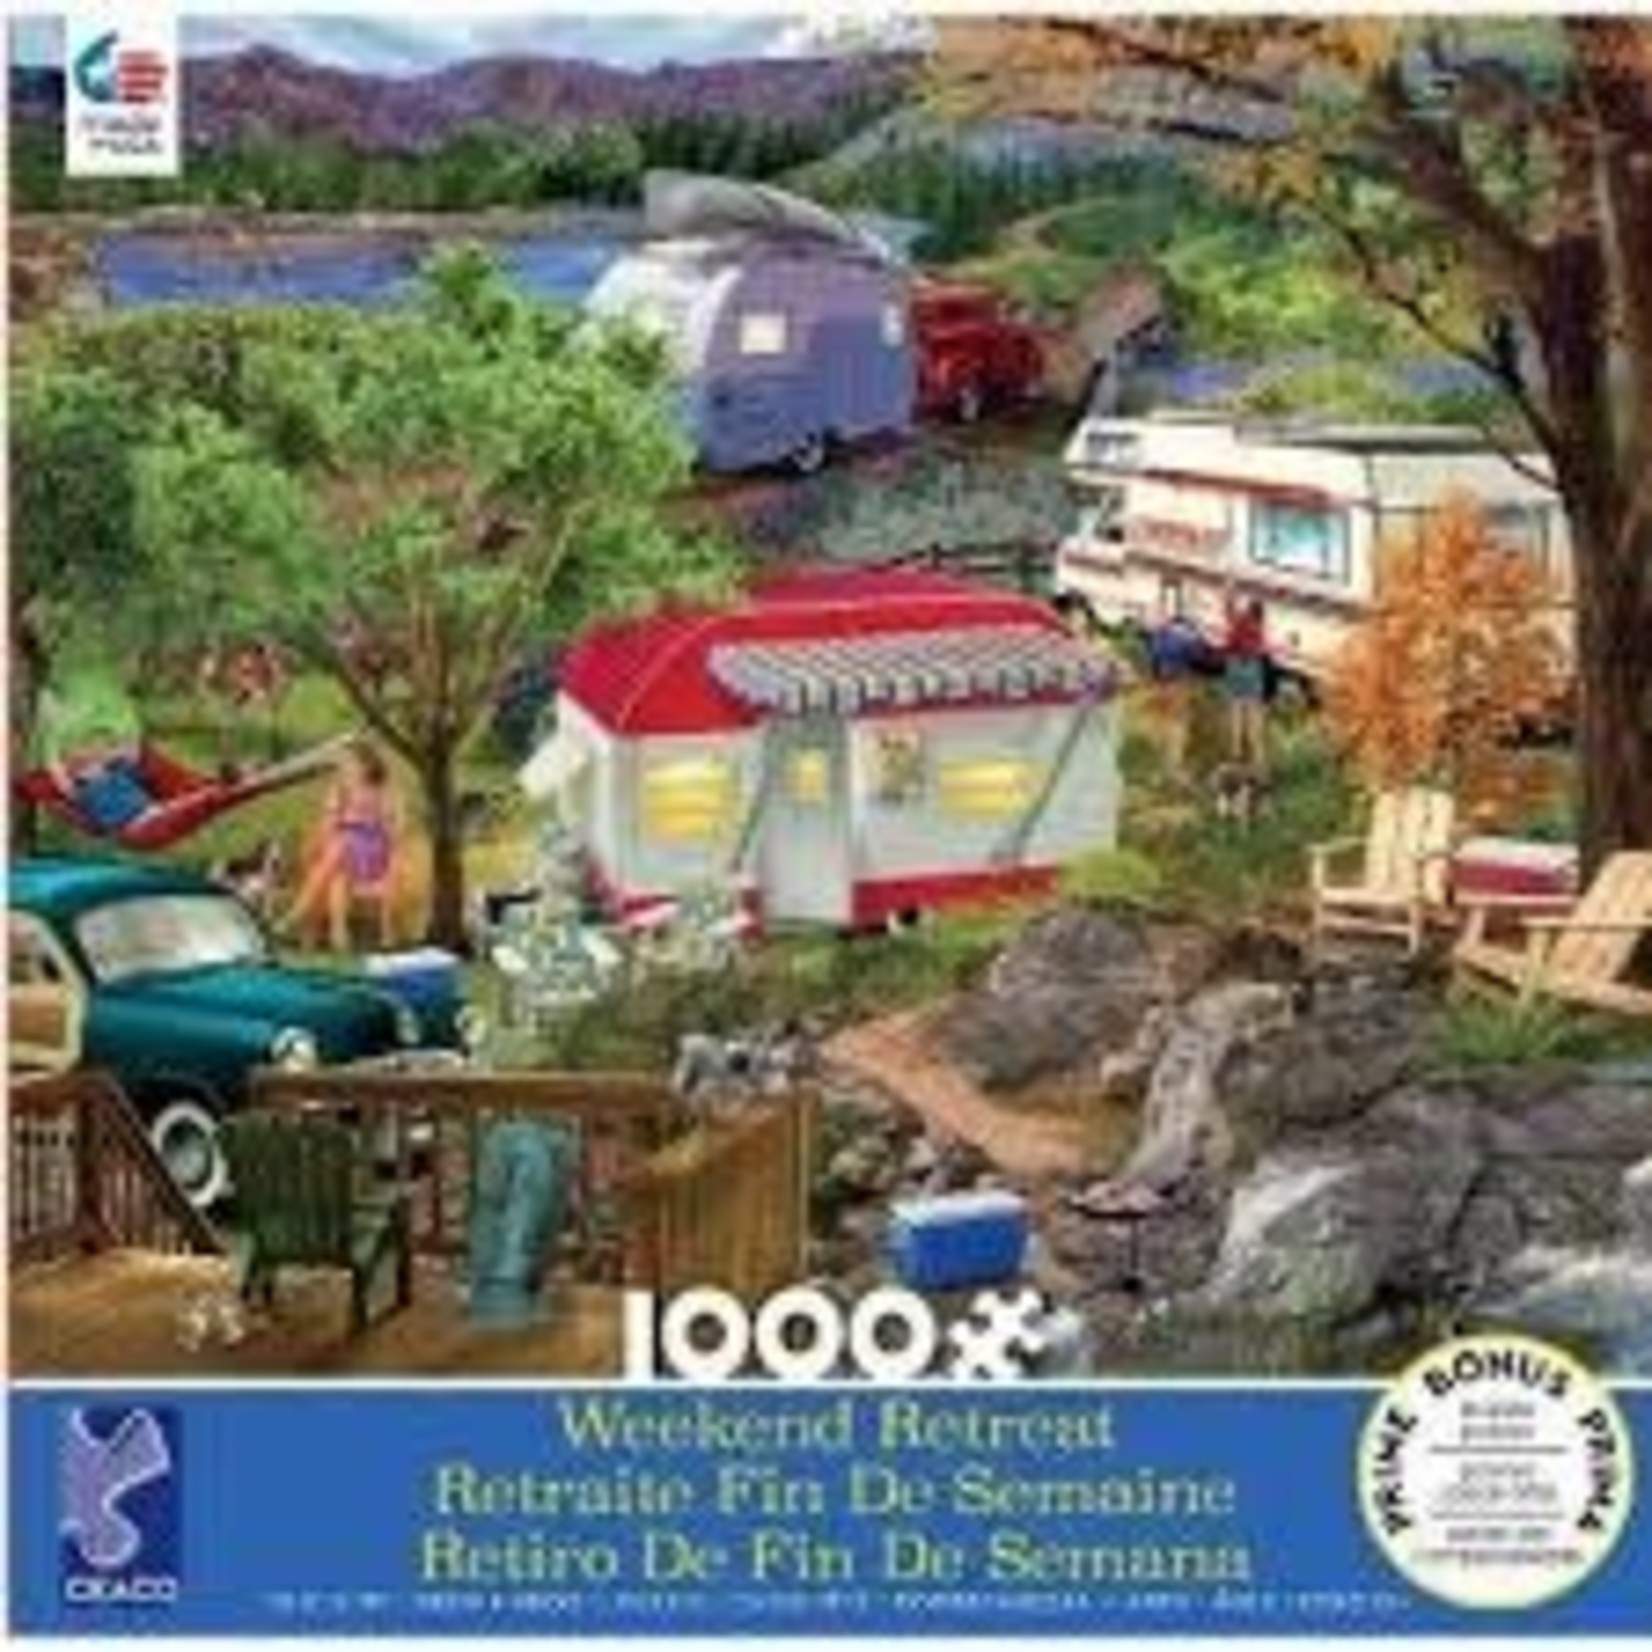 CEACO Camping WR 1000pc